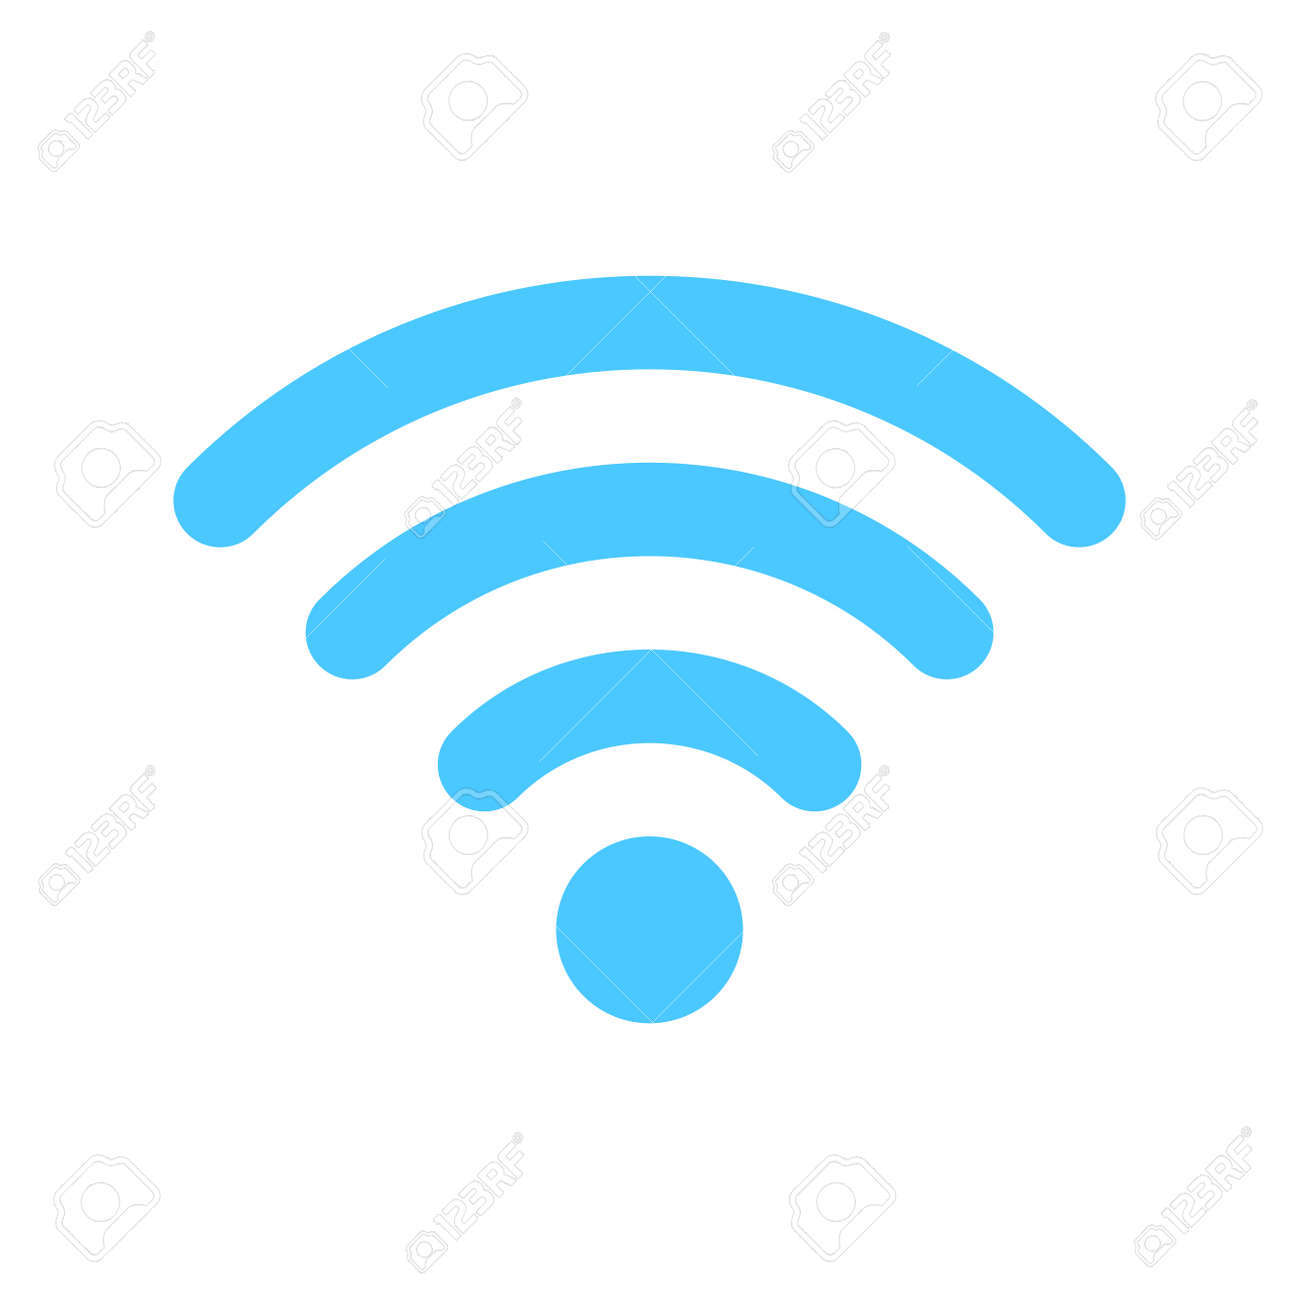 wifi icon. Wireless symbol vector for internet connection from router broadcasting. - 169442870